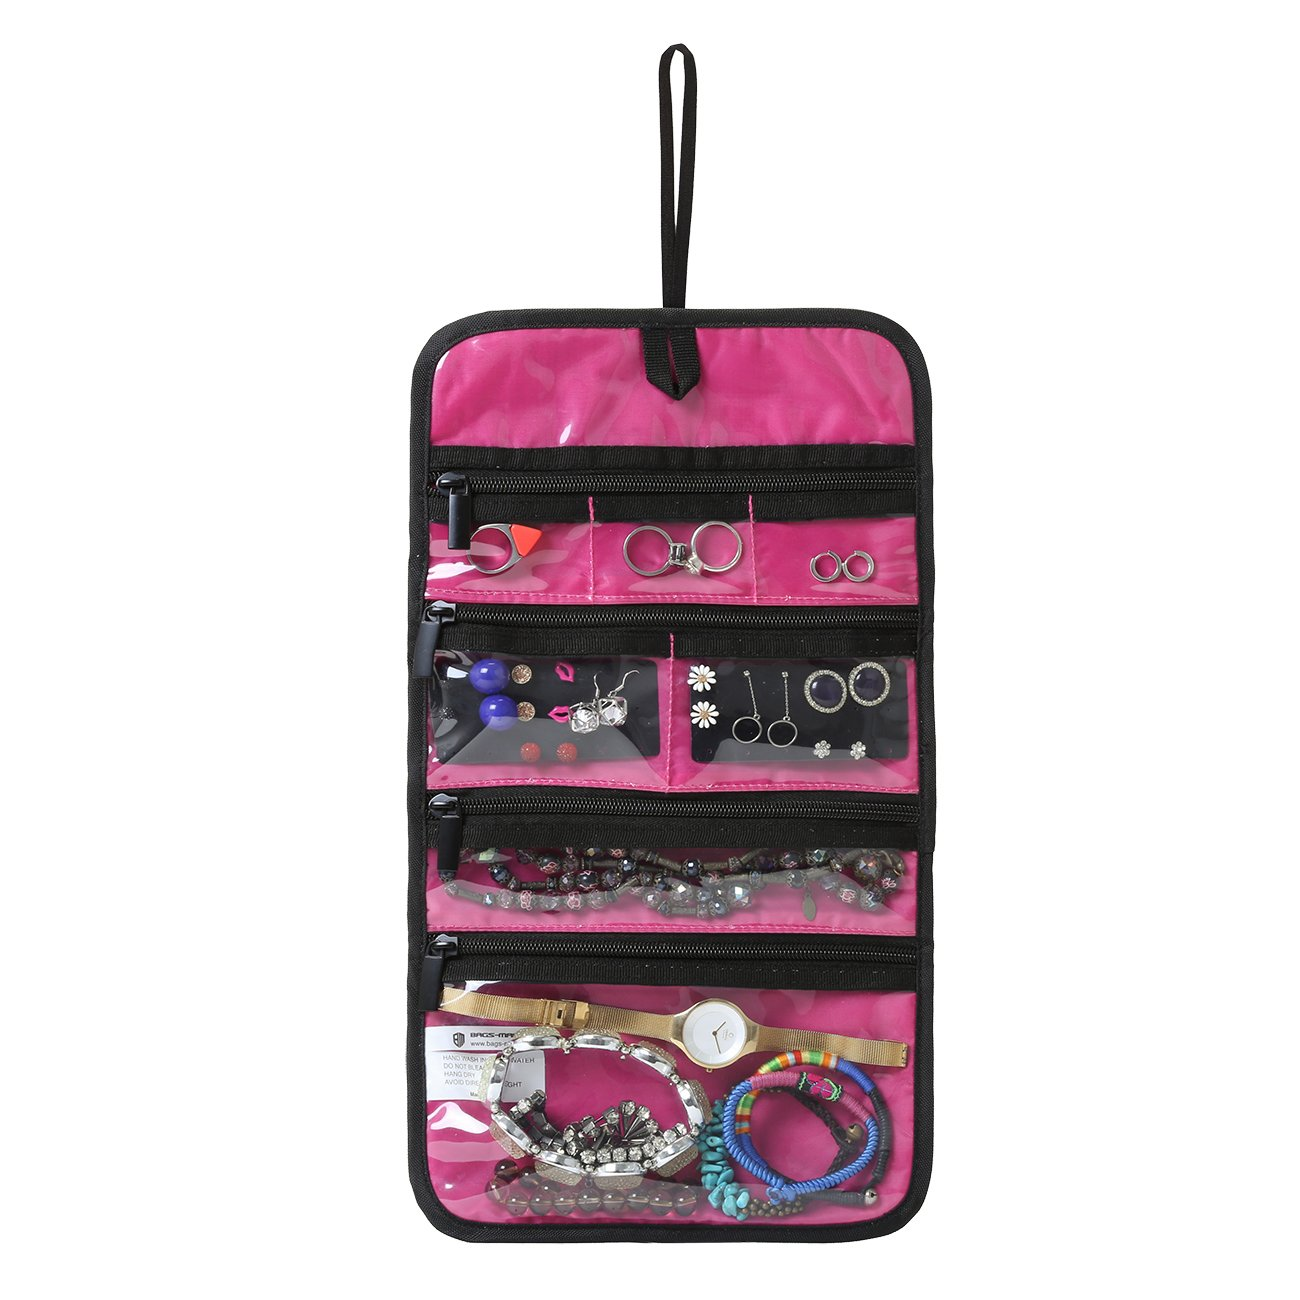 BAGSMART Hanging Travel Jewelry Roll Bag with Zippered Compartments for Earrings & Necklaces & Ring, Pink